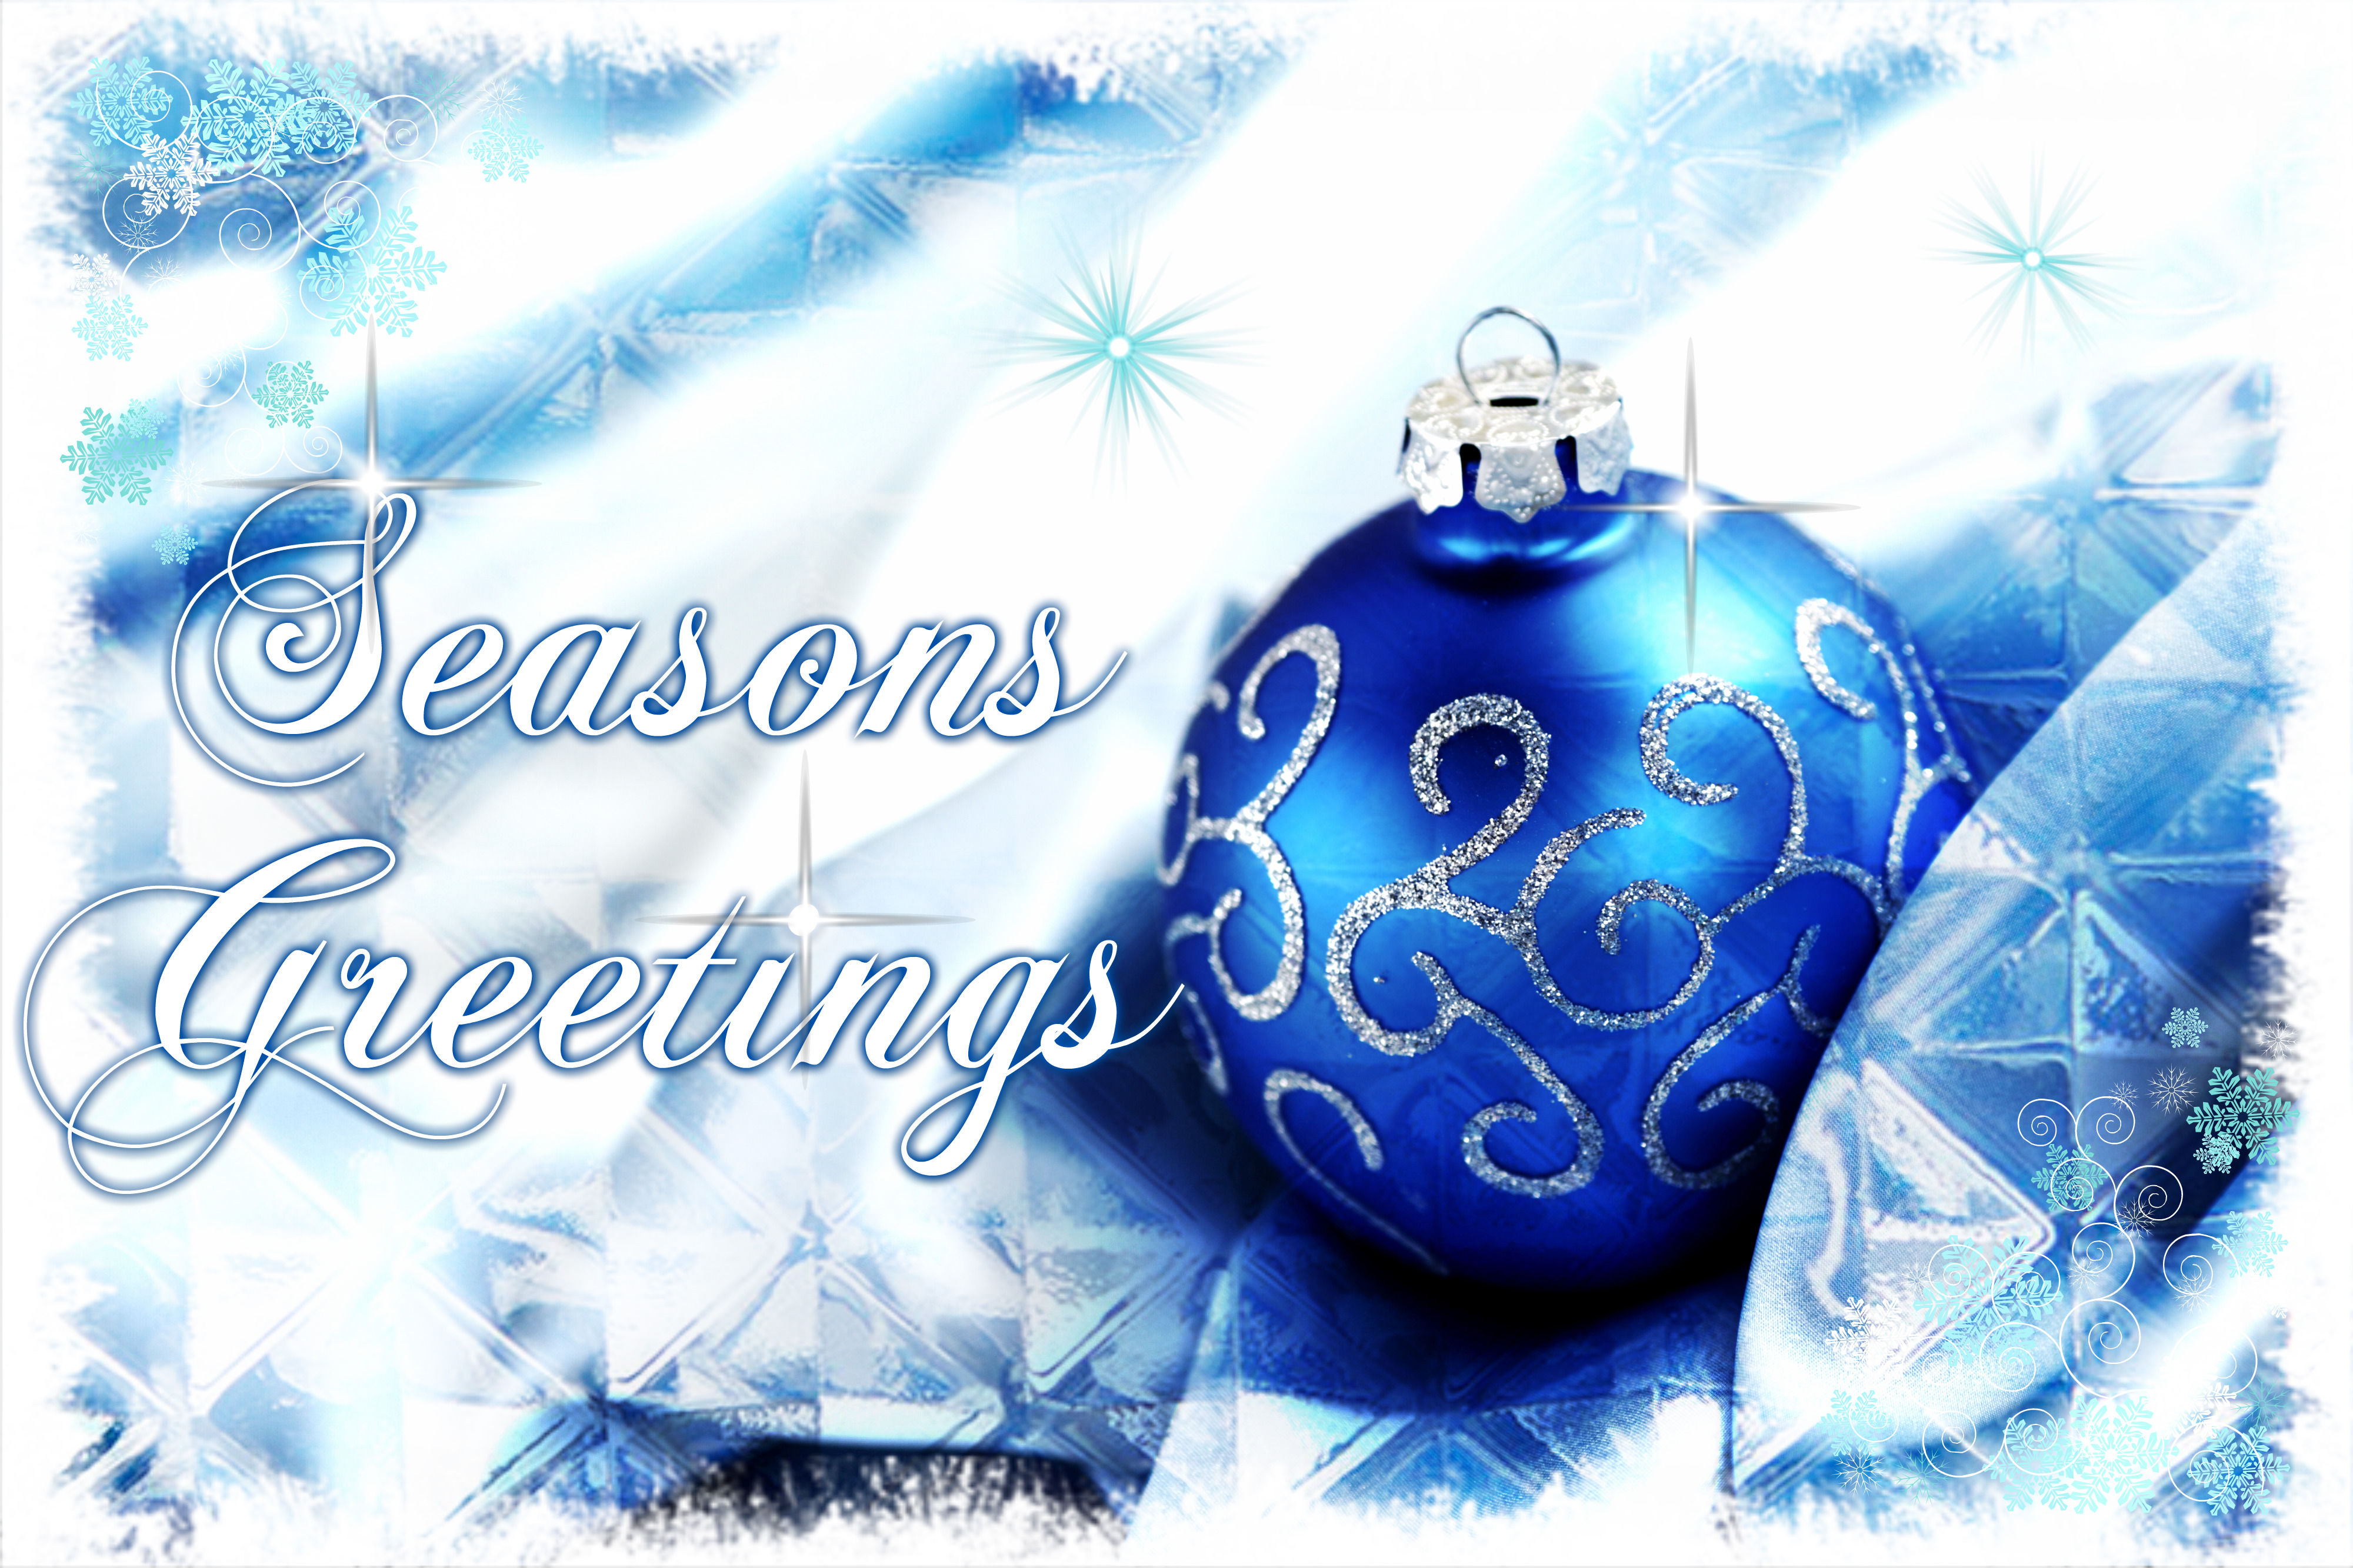 Seasons Greetings Pictures Photos And Images For